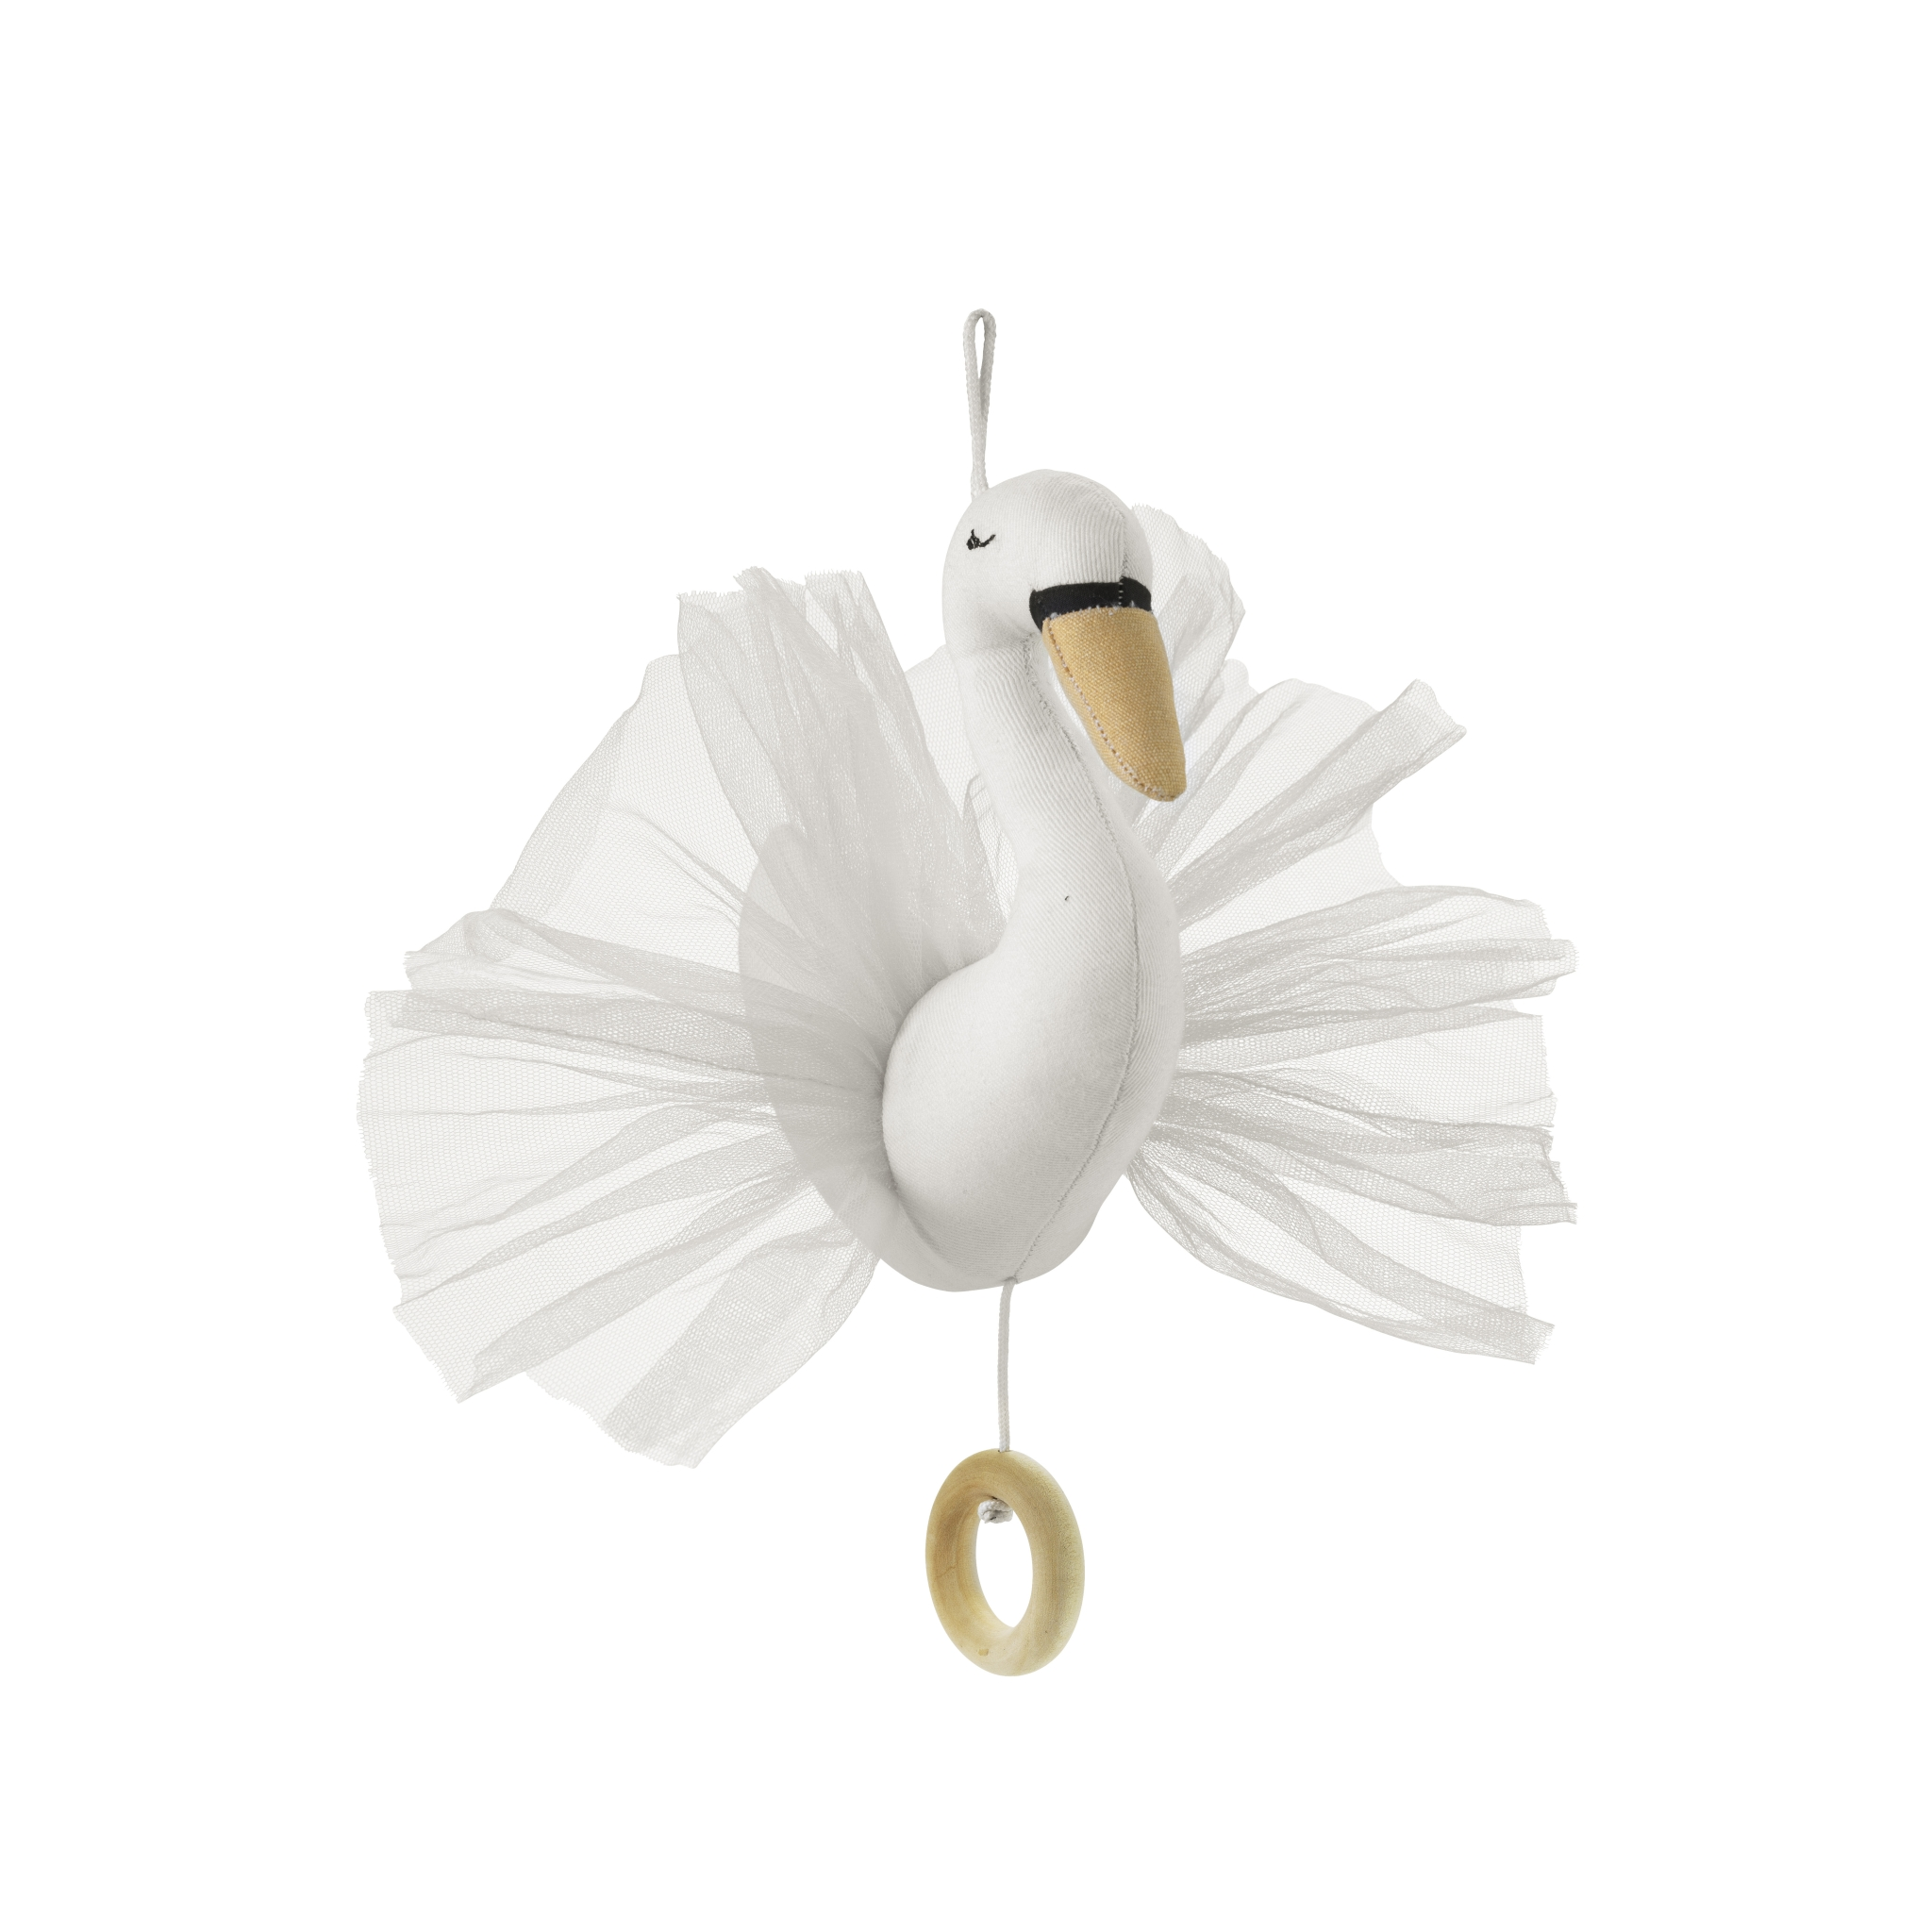 elodie details musical mobile the ugly duckling